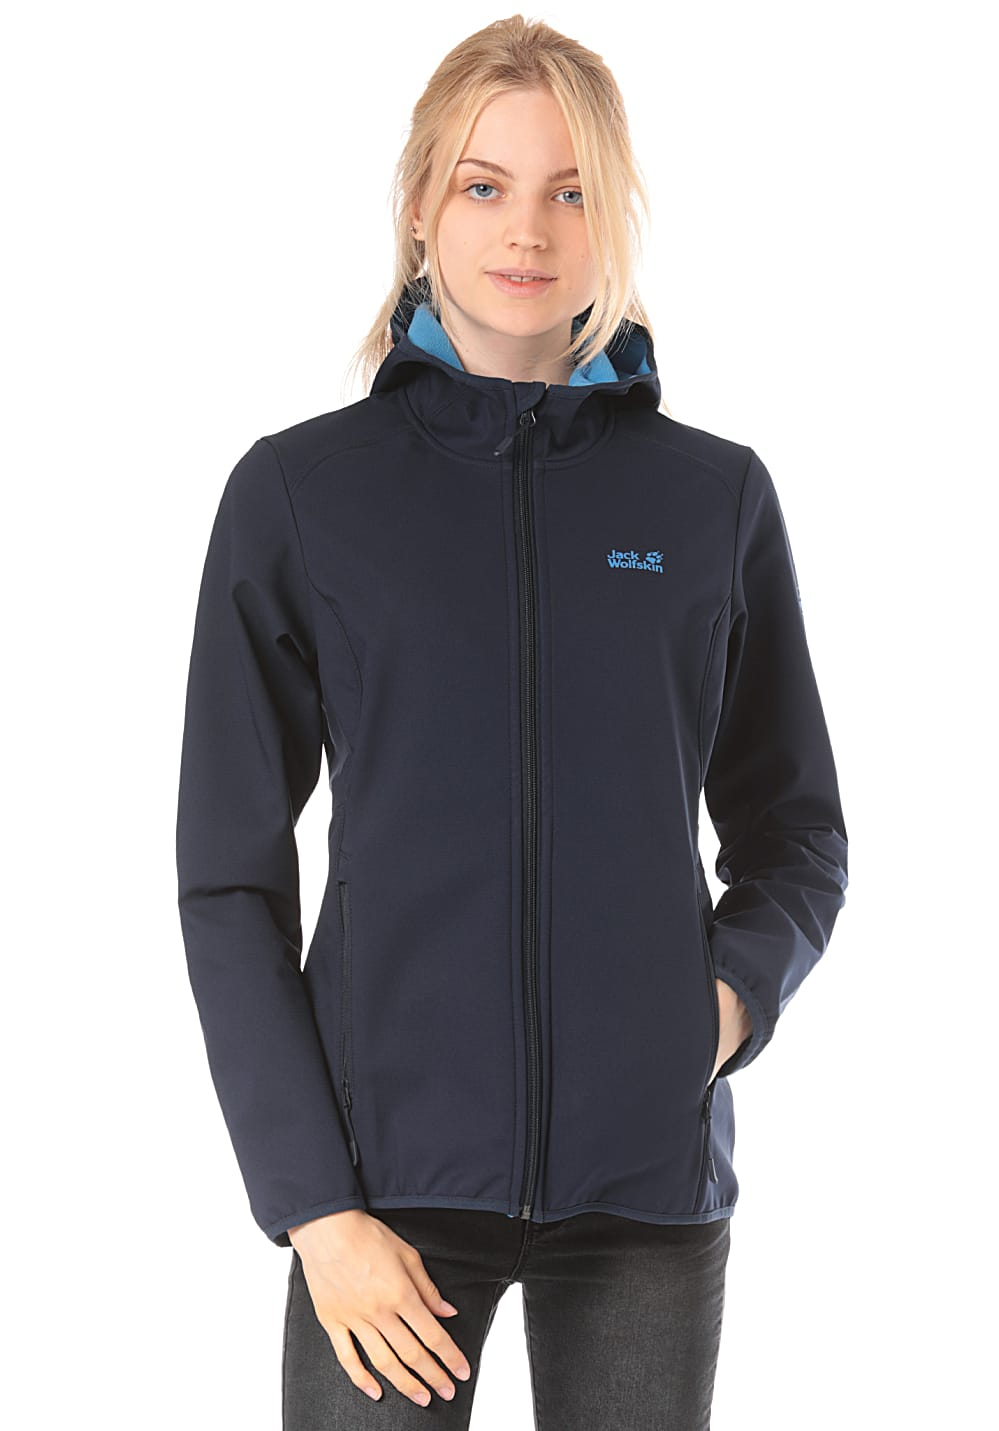 Jack Wolfskin Northern Point Outdoorjacke für Damen Blau